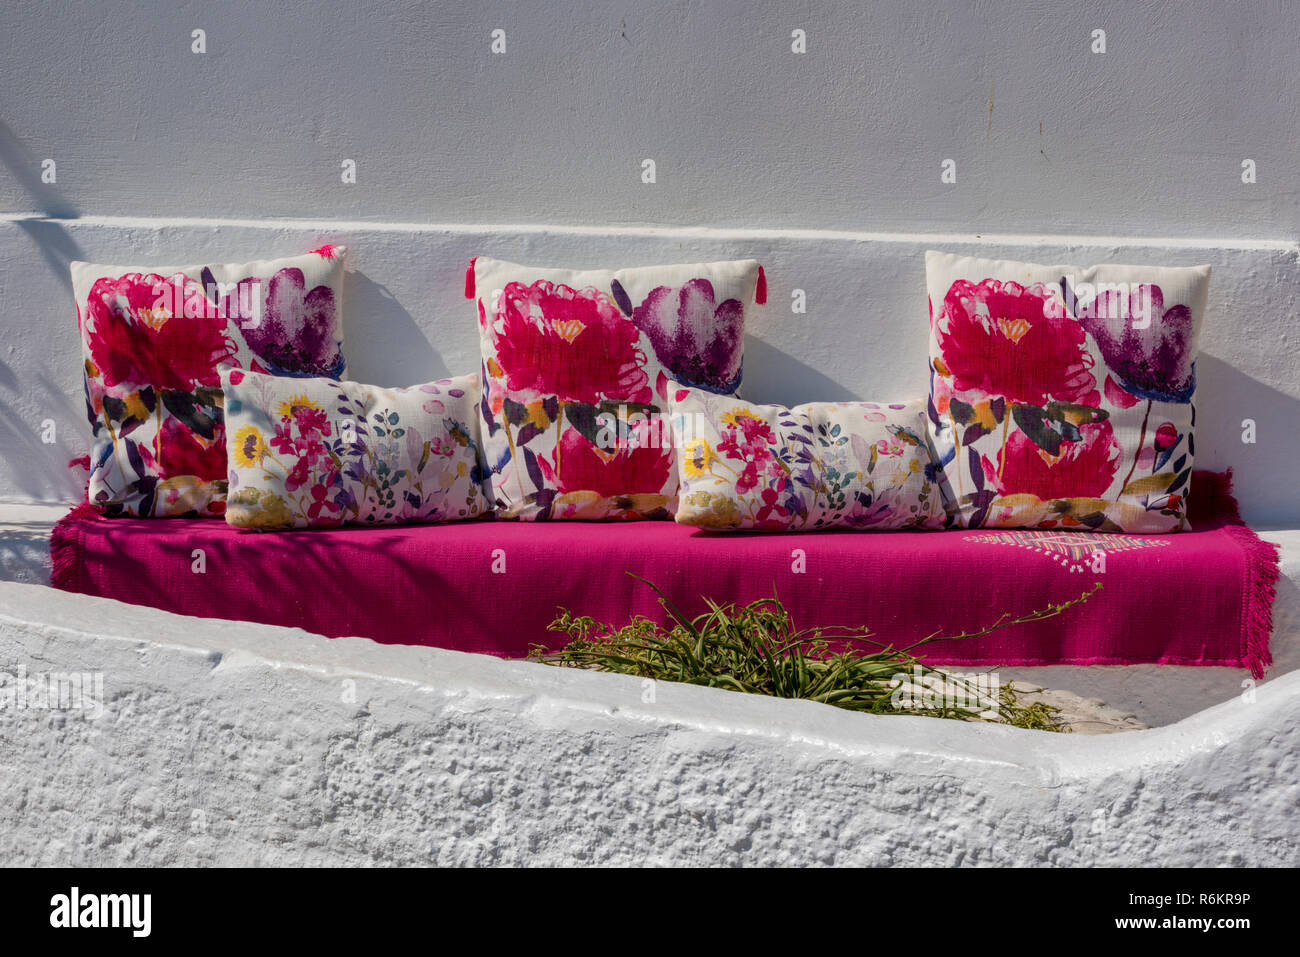 outdoor designer furniture at a greek tavern in kassiopi on the coast of corfu in Greece. - Stock Image